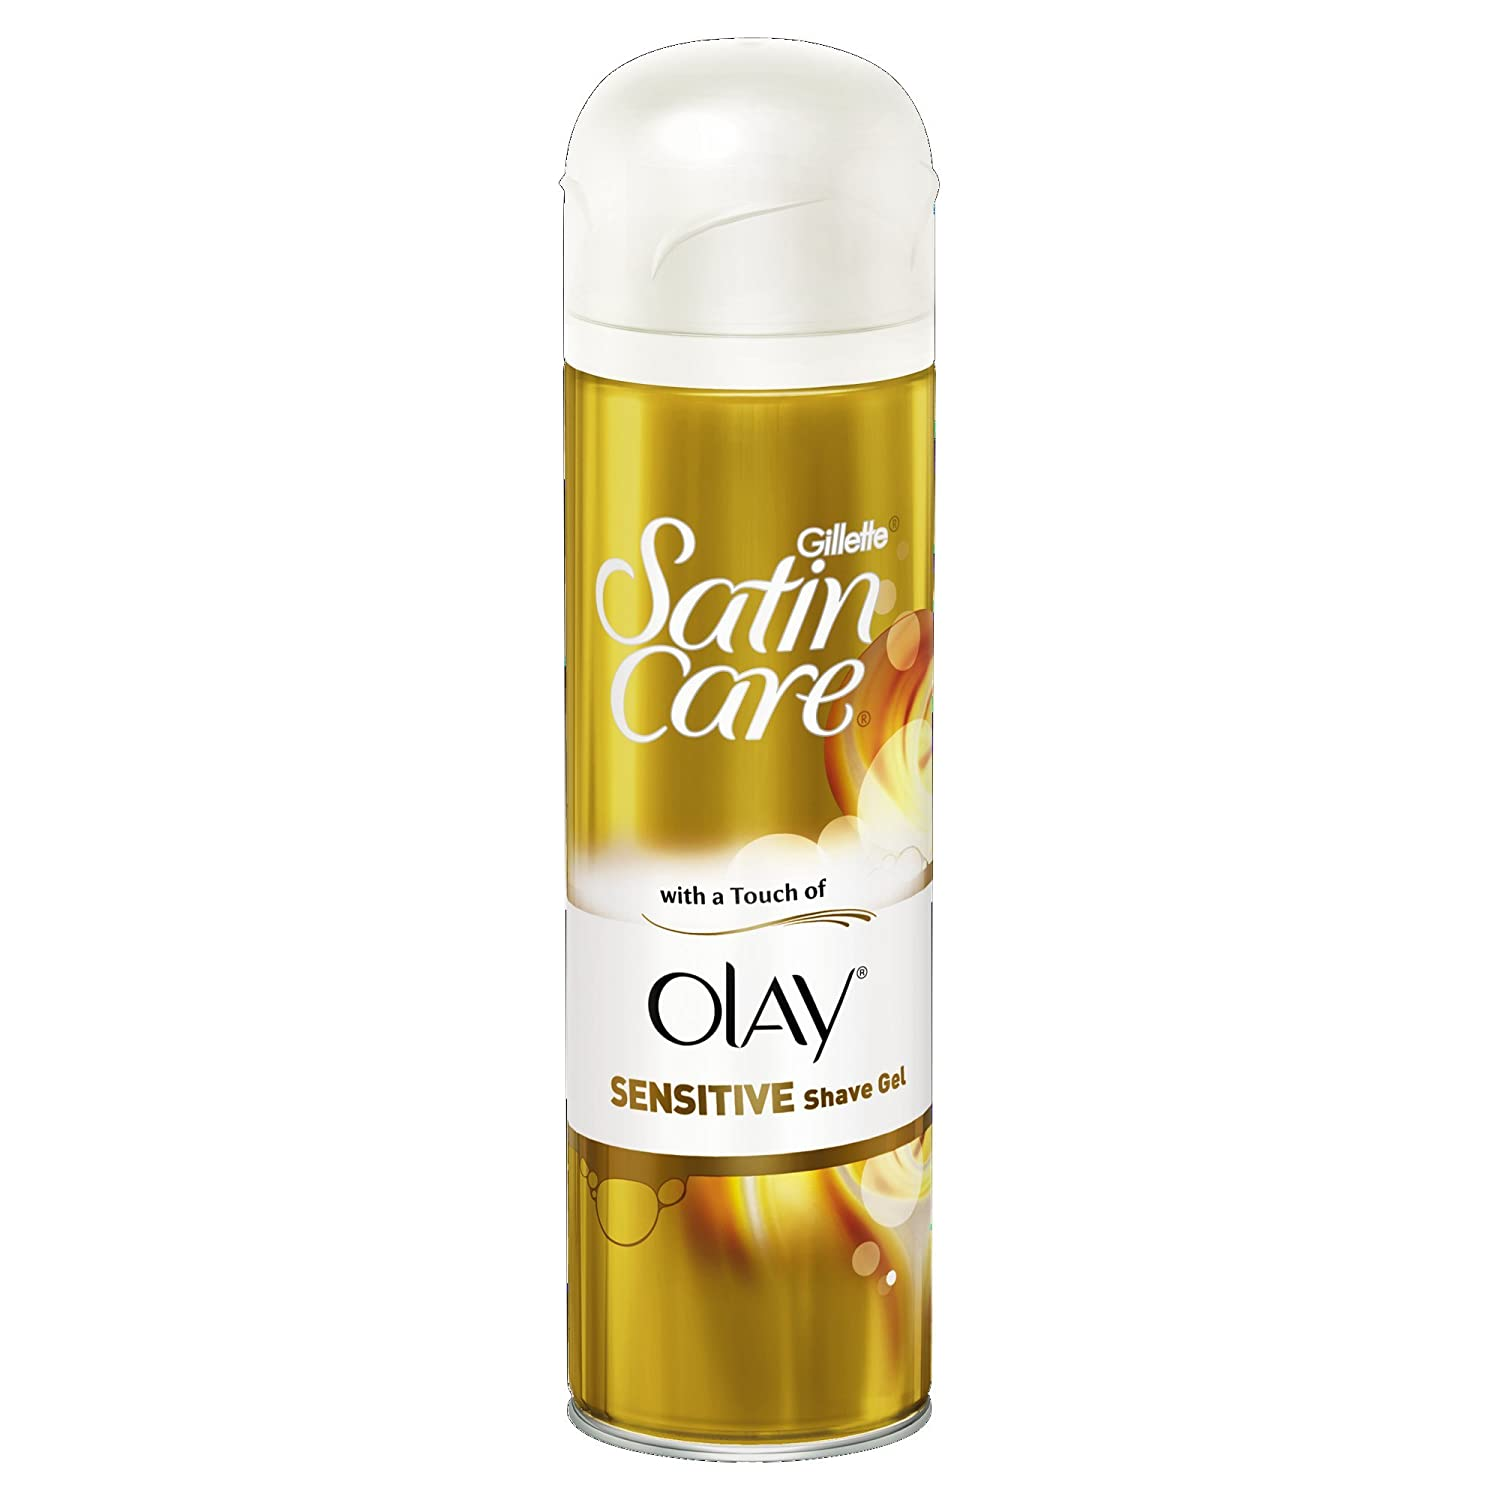 Gillette Satin Care Shave Gel with a Touch of Olay - 200 ml 80203665